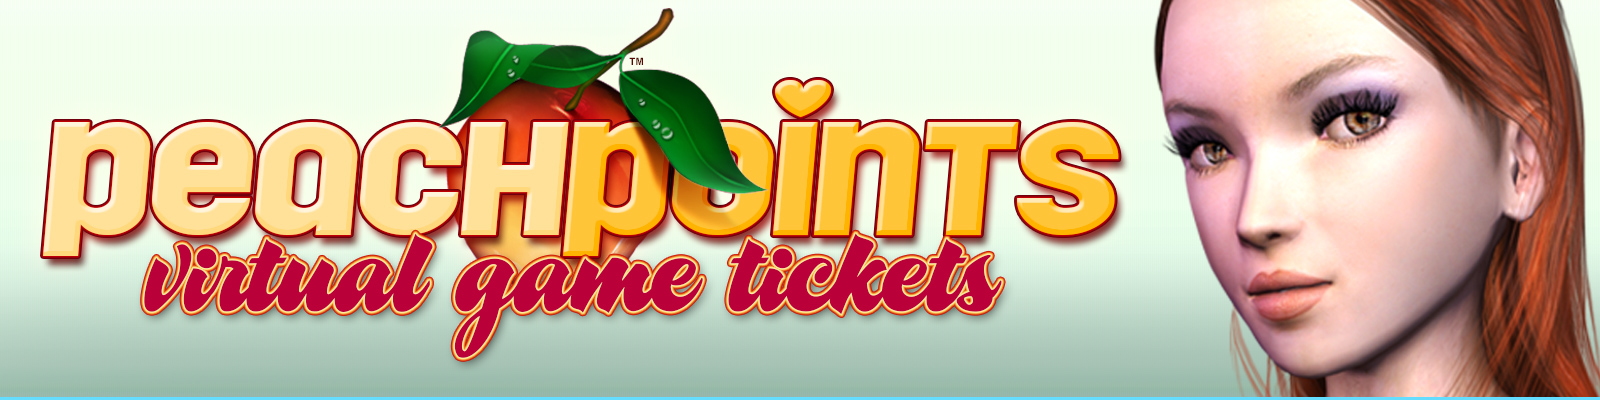 Peach Points : (10,000) Virtual Game Tickets